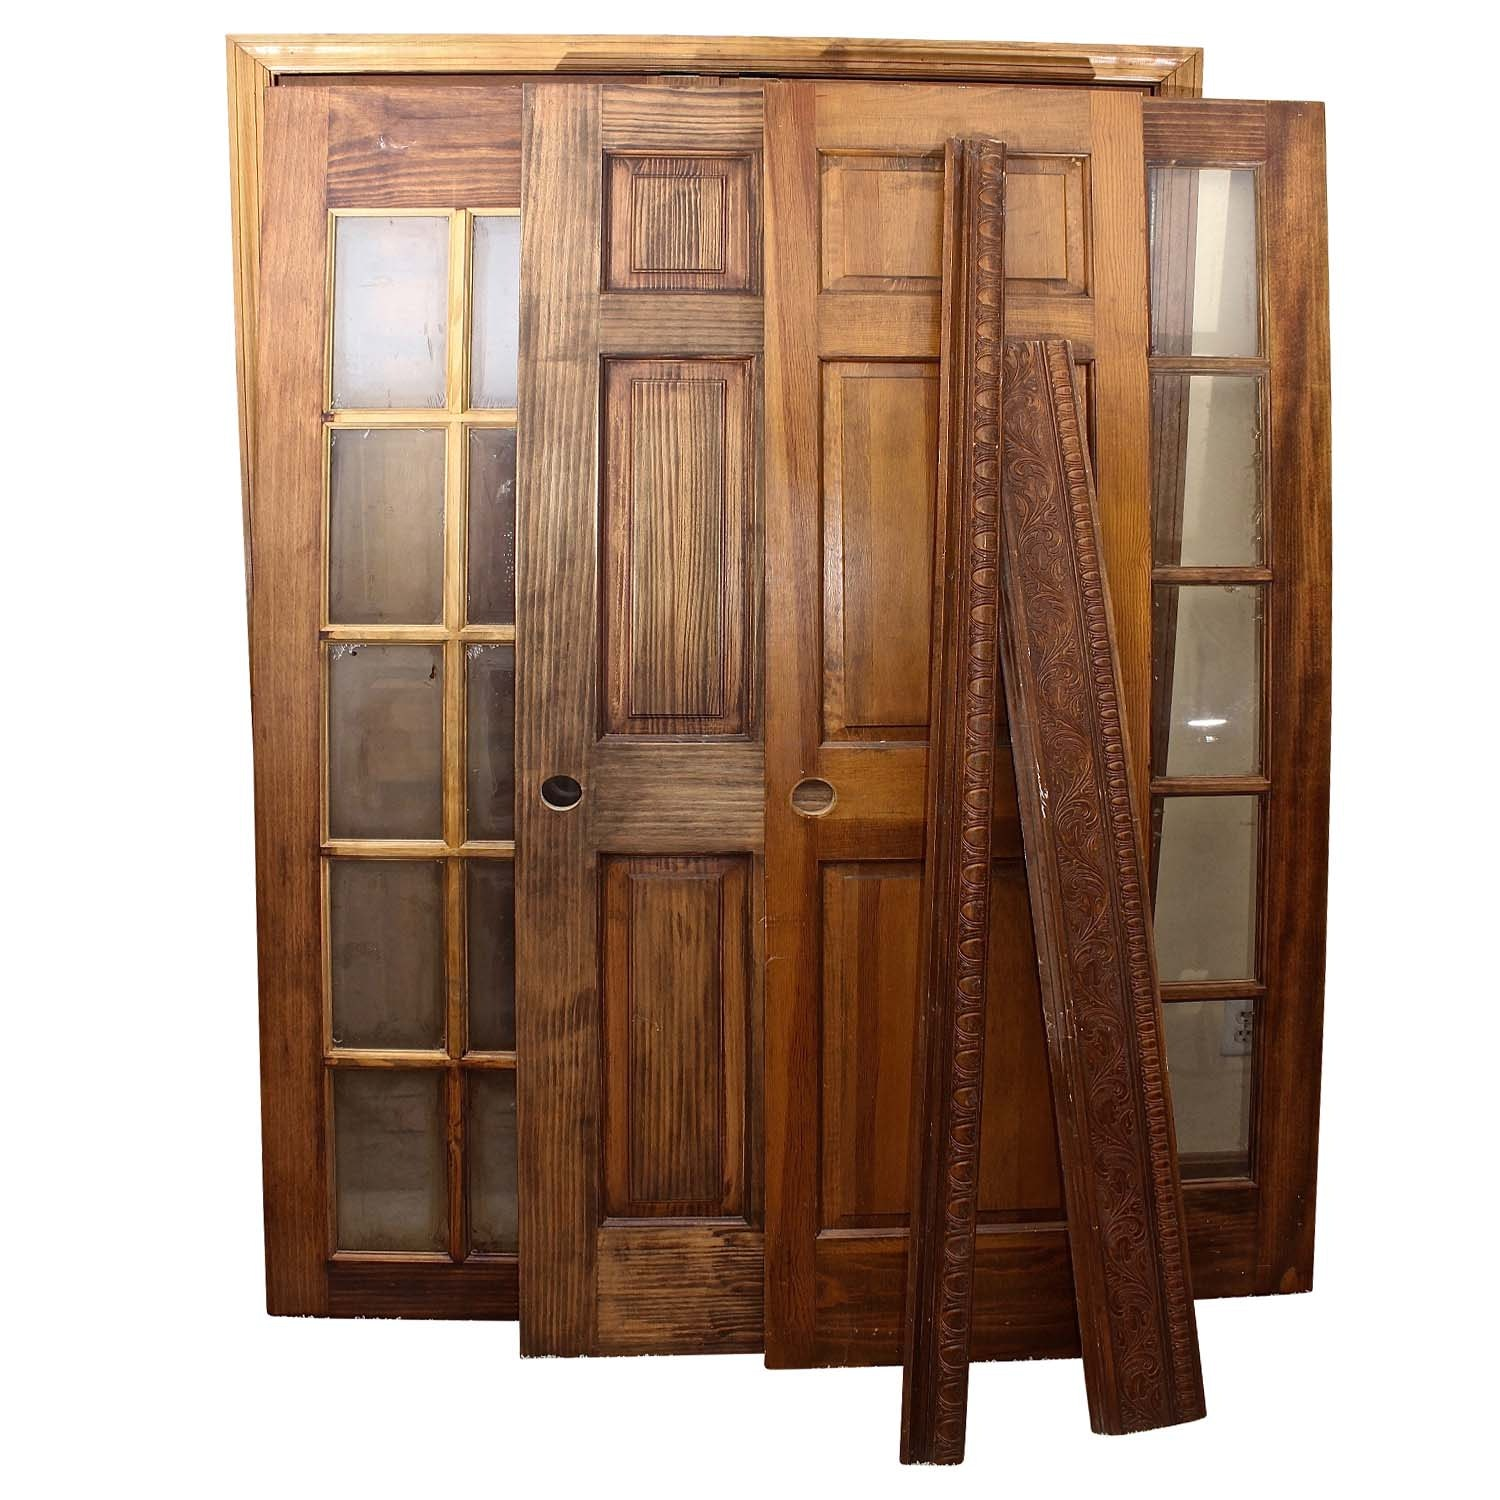 Solid Wood Doors And Decorative Crown Molding